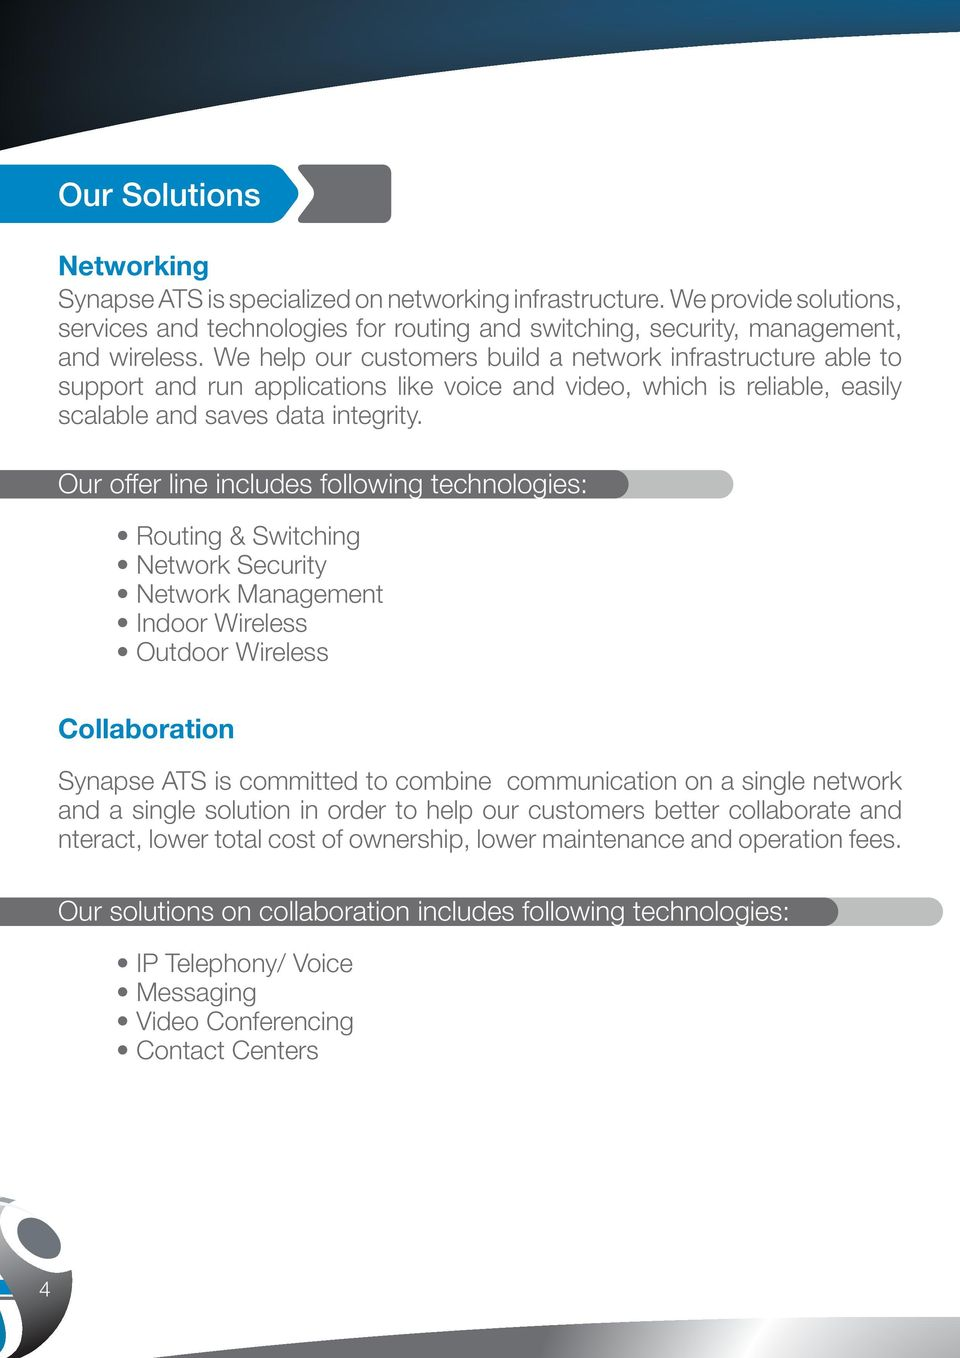 Our offer line includes following technologies: Routing & Switching Network Security Network Management Indoor Wireless Outdoor Wireless Collaboration Synapse ATS is committed to combine